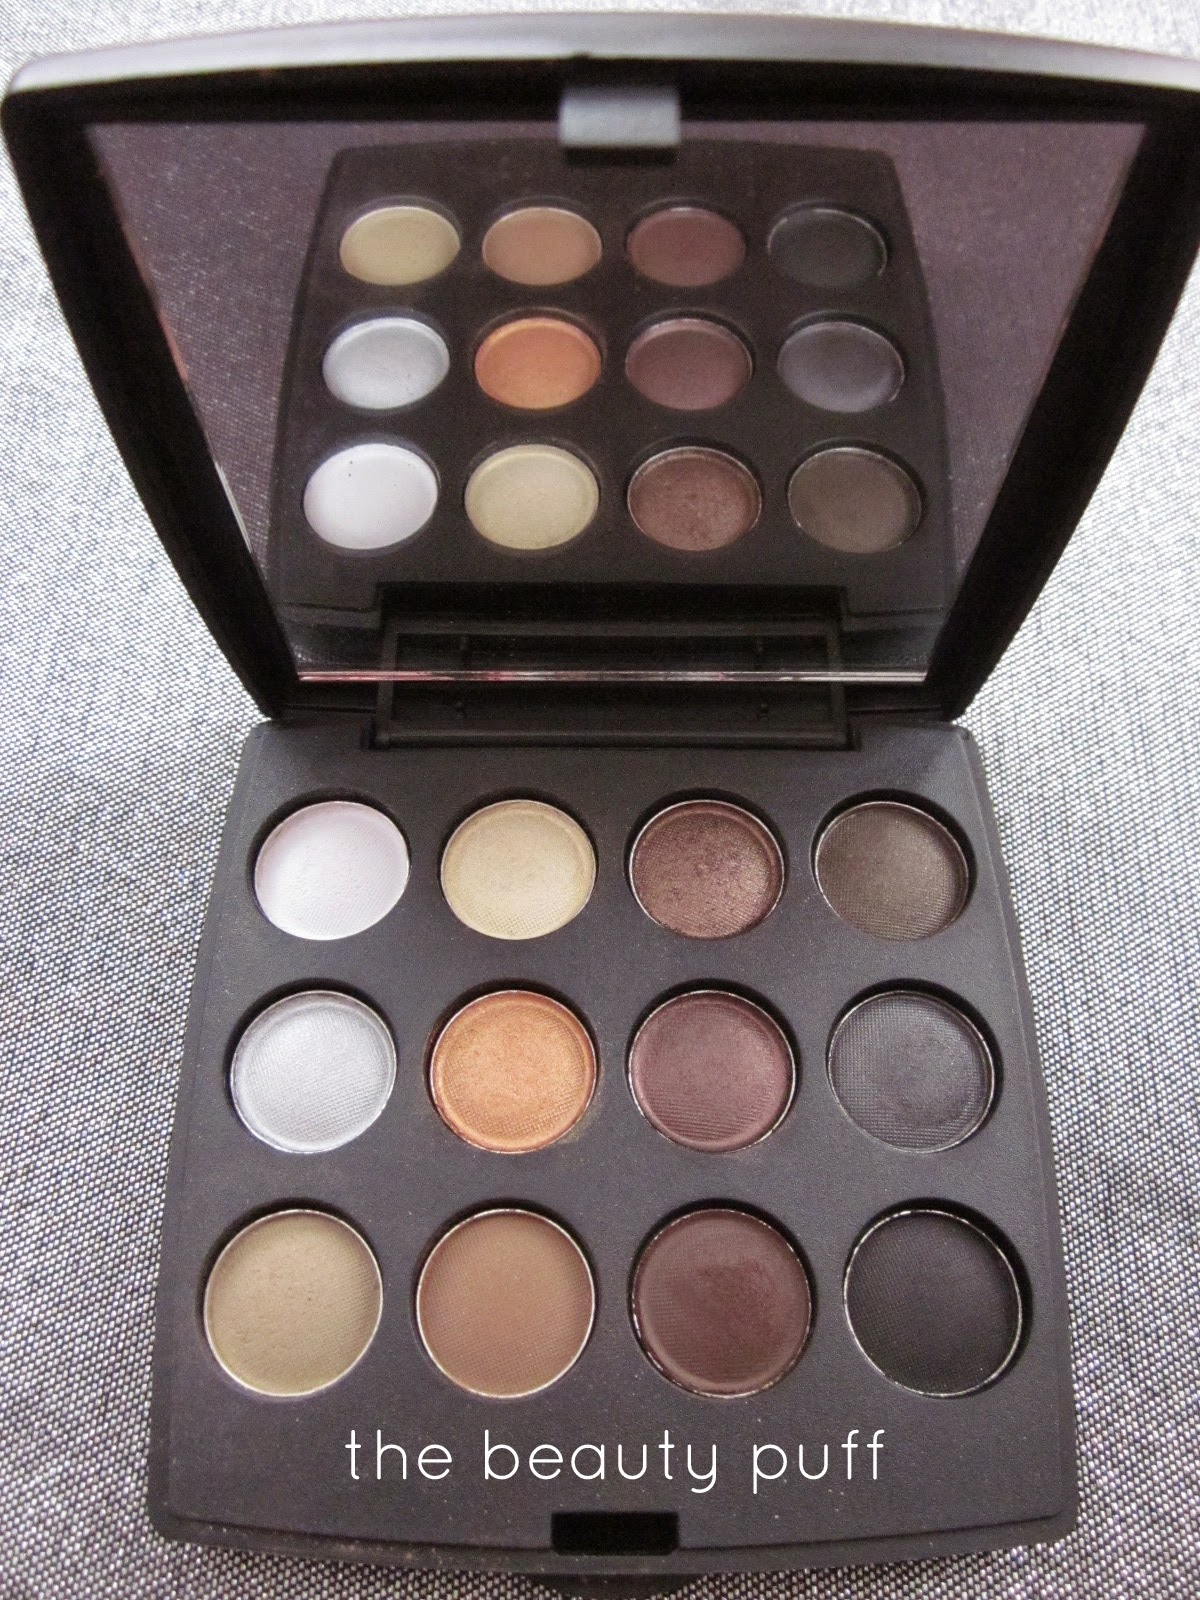 coastal scents cairo palette - the beauty puff